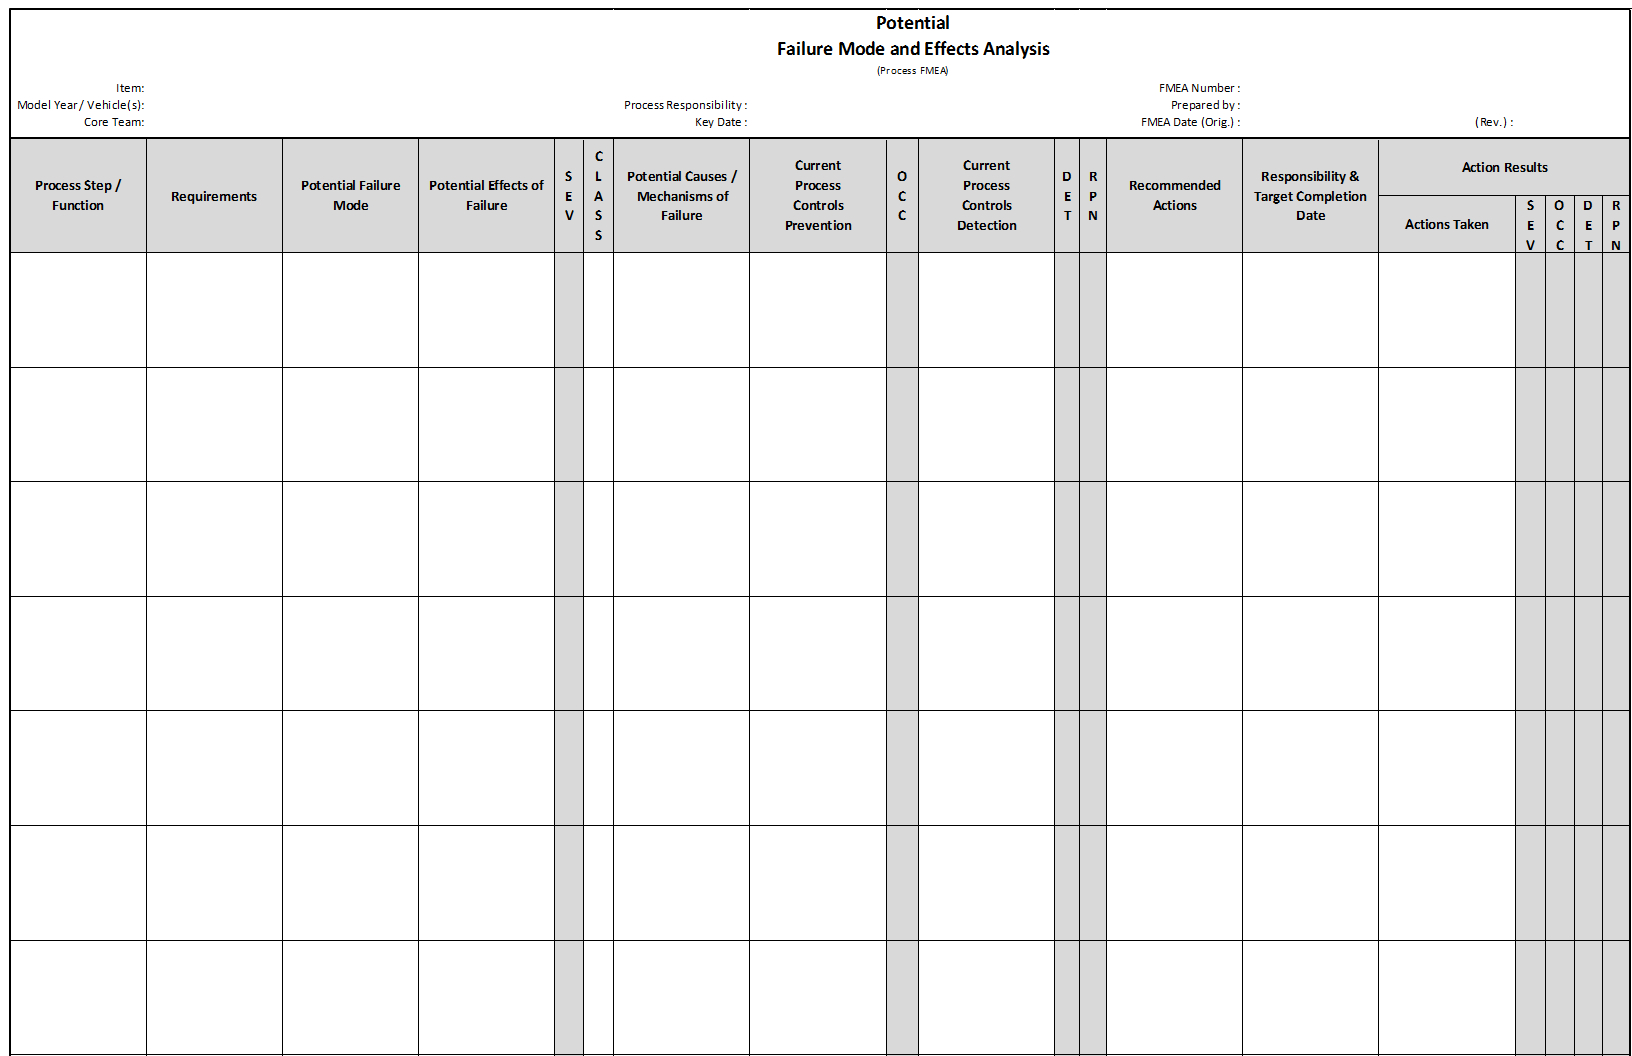 Fmea | Failure Mode And Effects Analysis | Quality One Pertaining To Failure Analysis Report Template